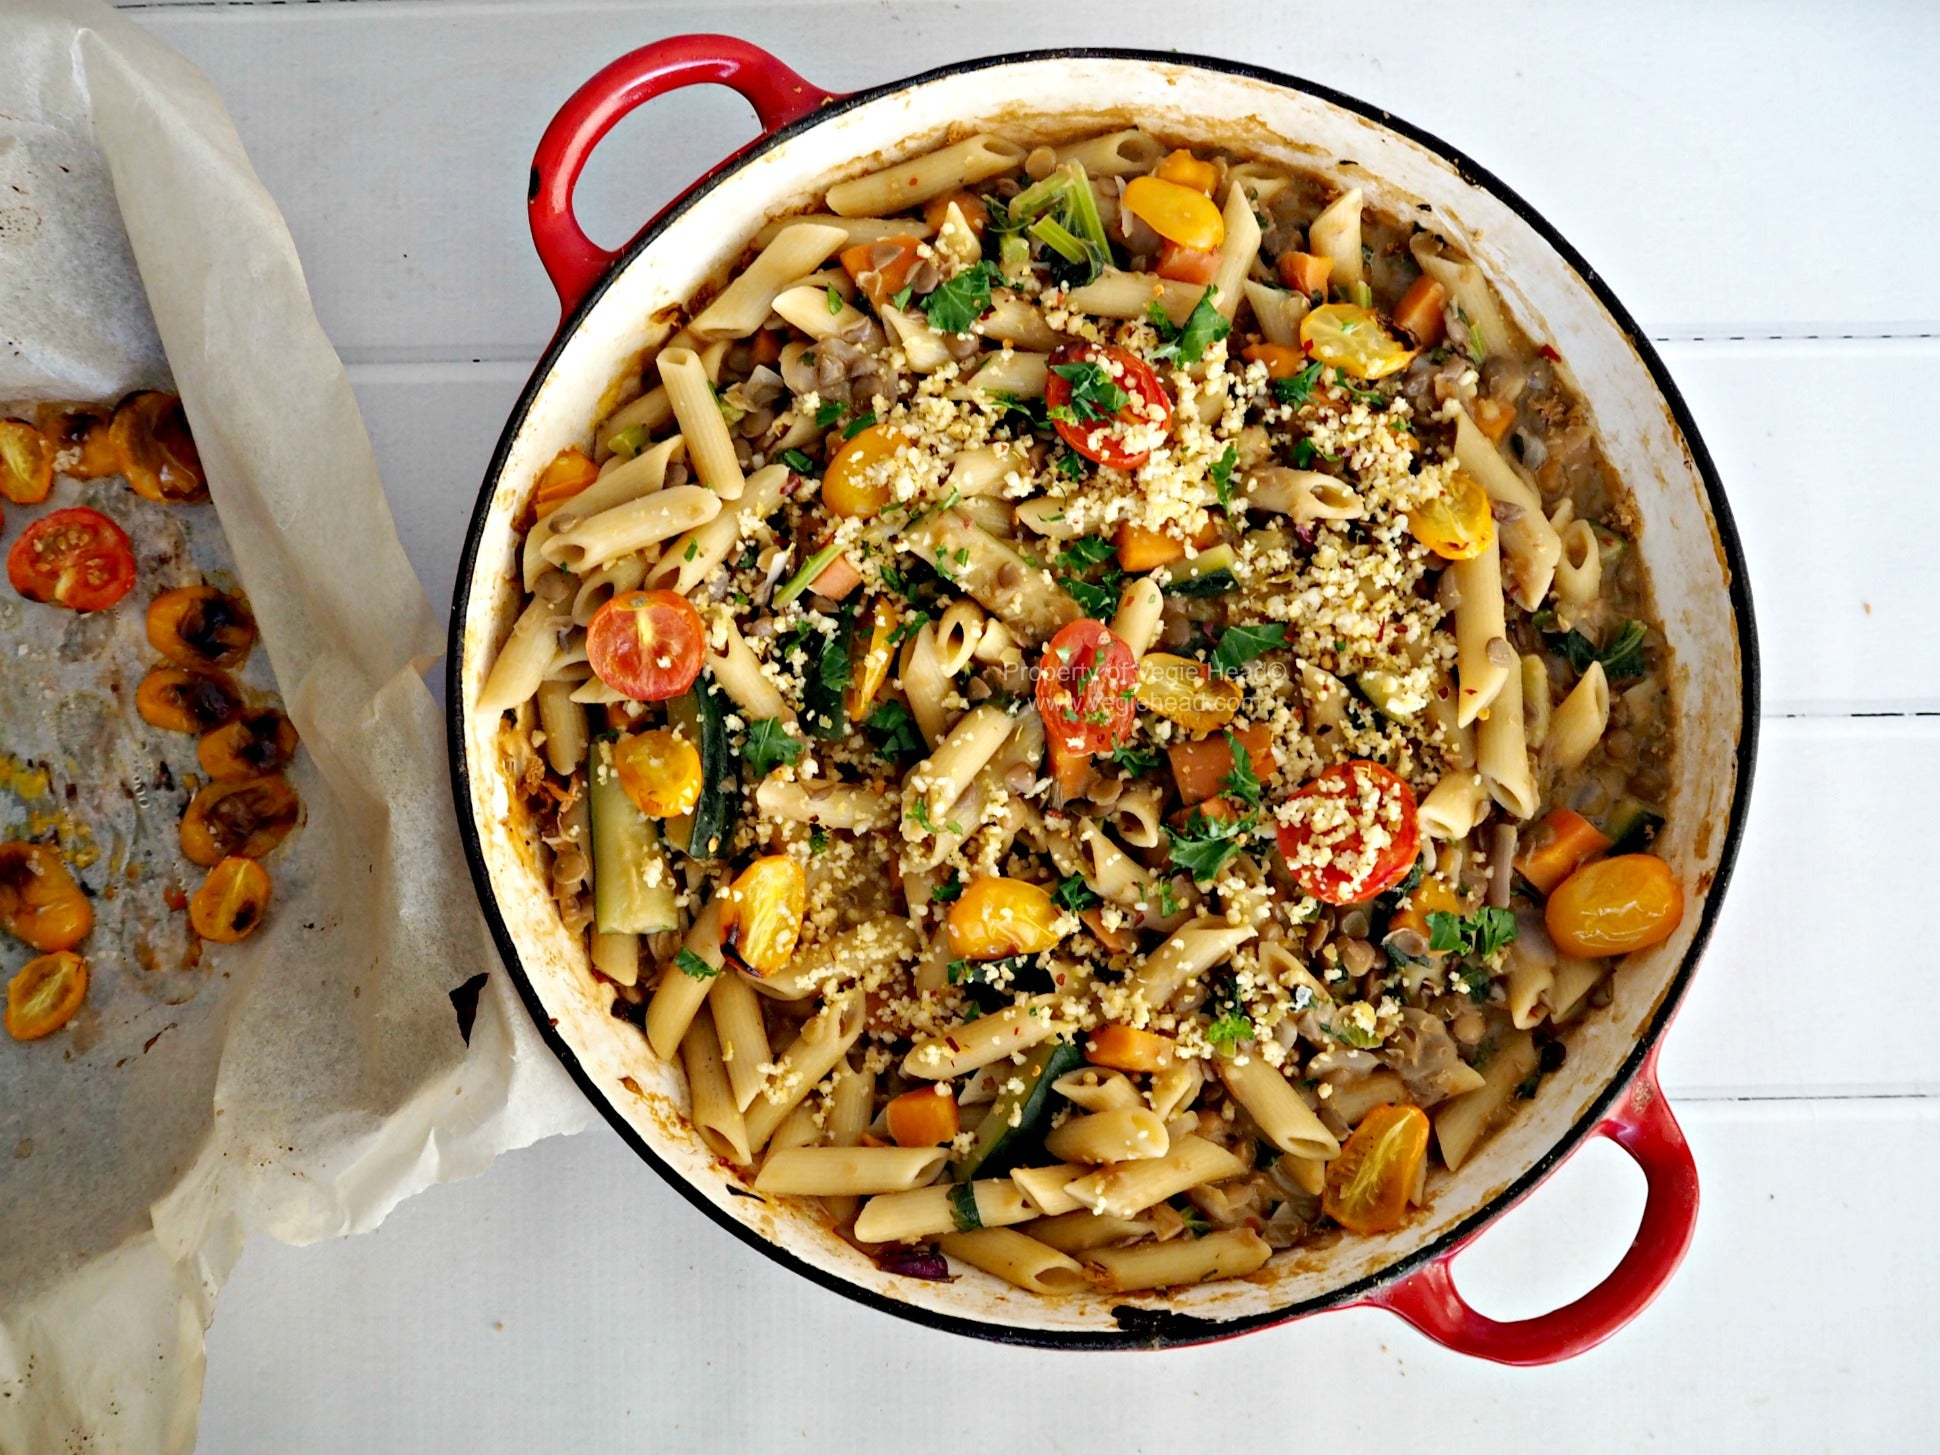 Lentil and Pasta Ragu with Roasted Tomatoes and Kale, and Homemade Vegan Parmesan Sprinkles